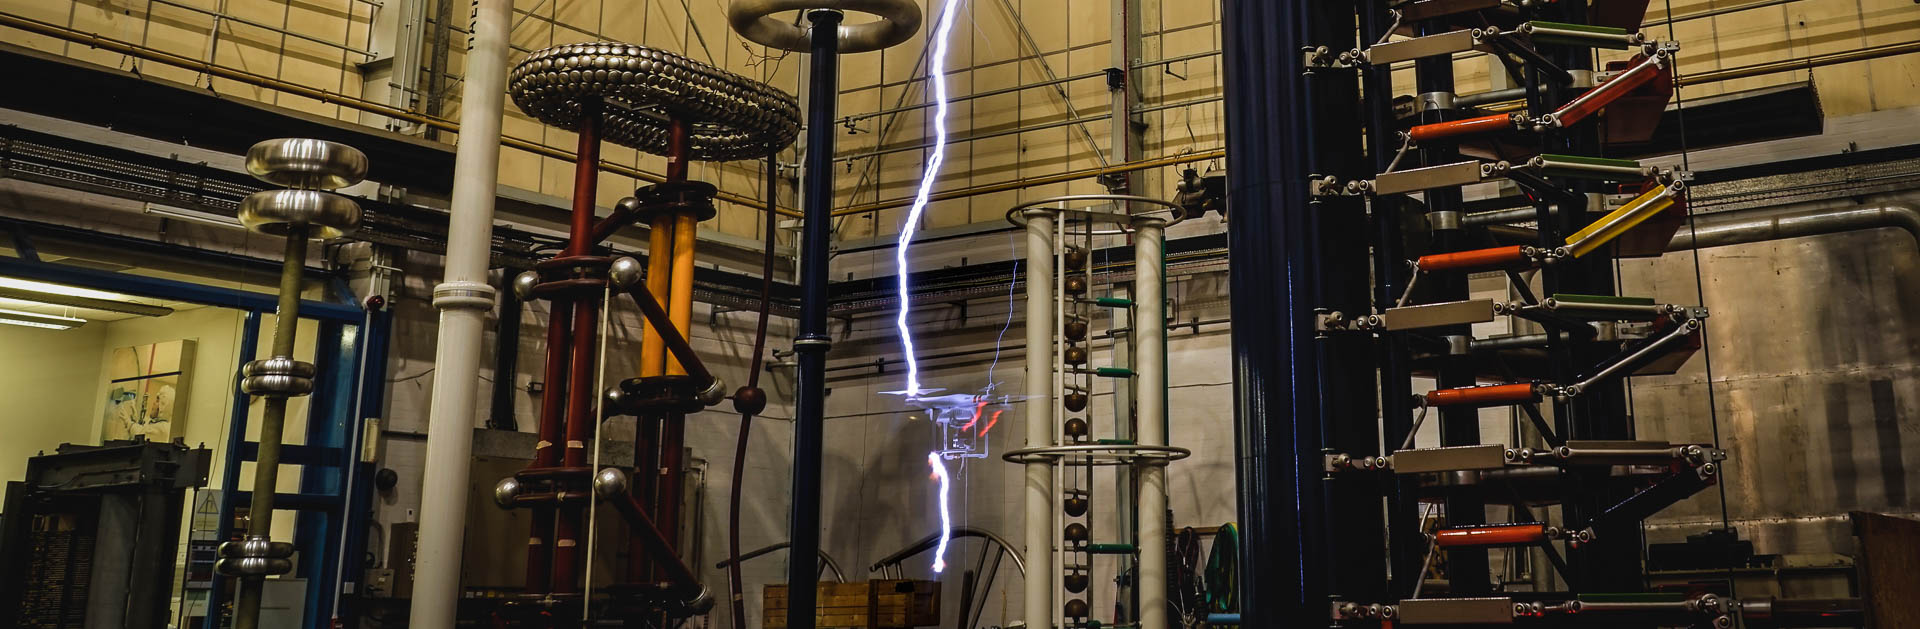 A drone is electrocuted in the high voltage test lab at The University of Manchester